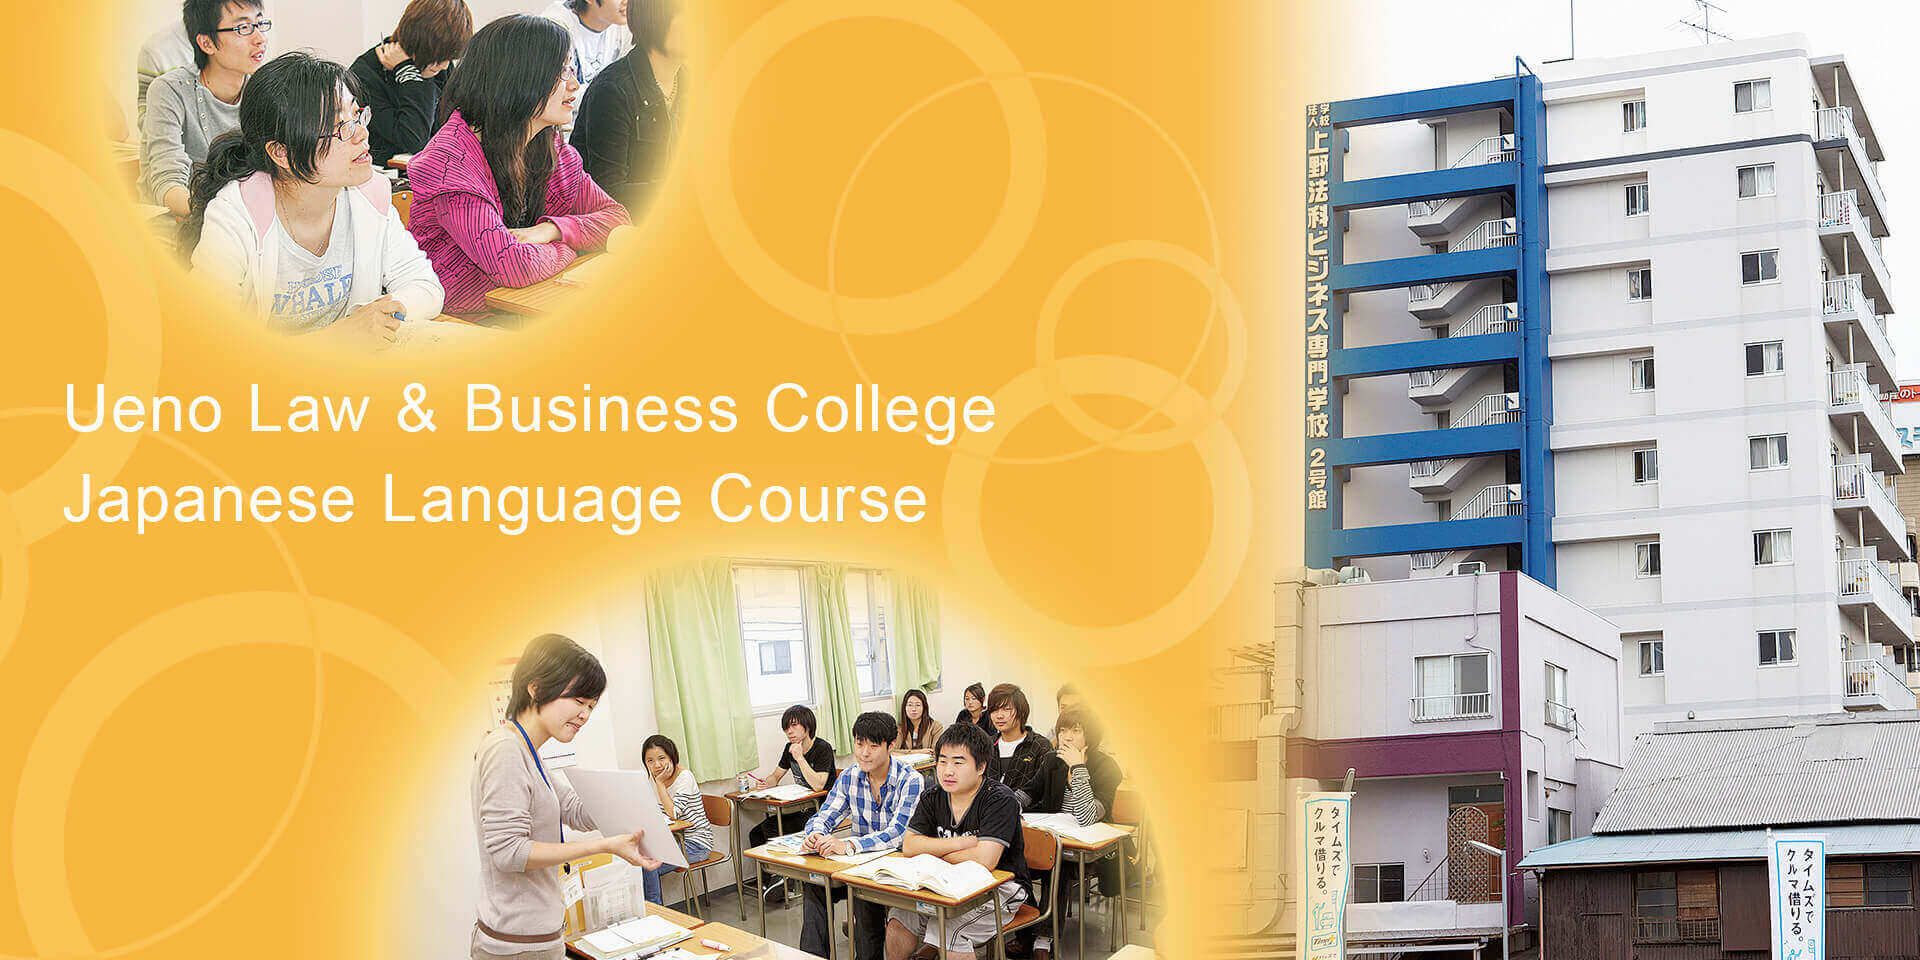 Ueno Law & Business College Japanese Language Course